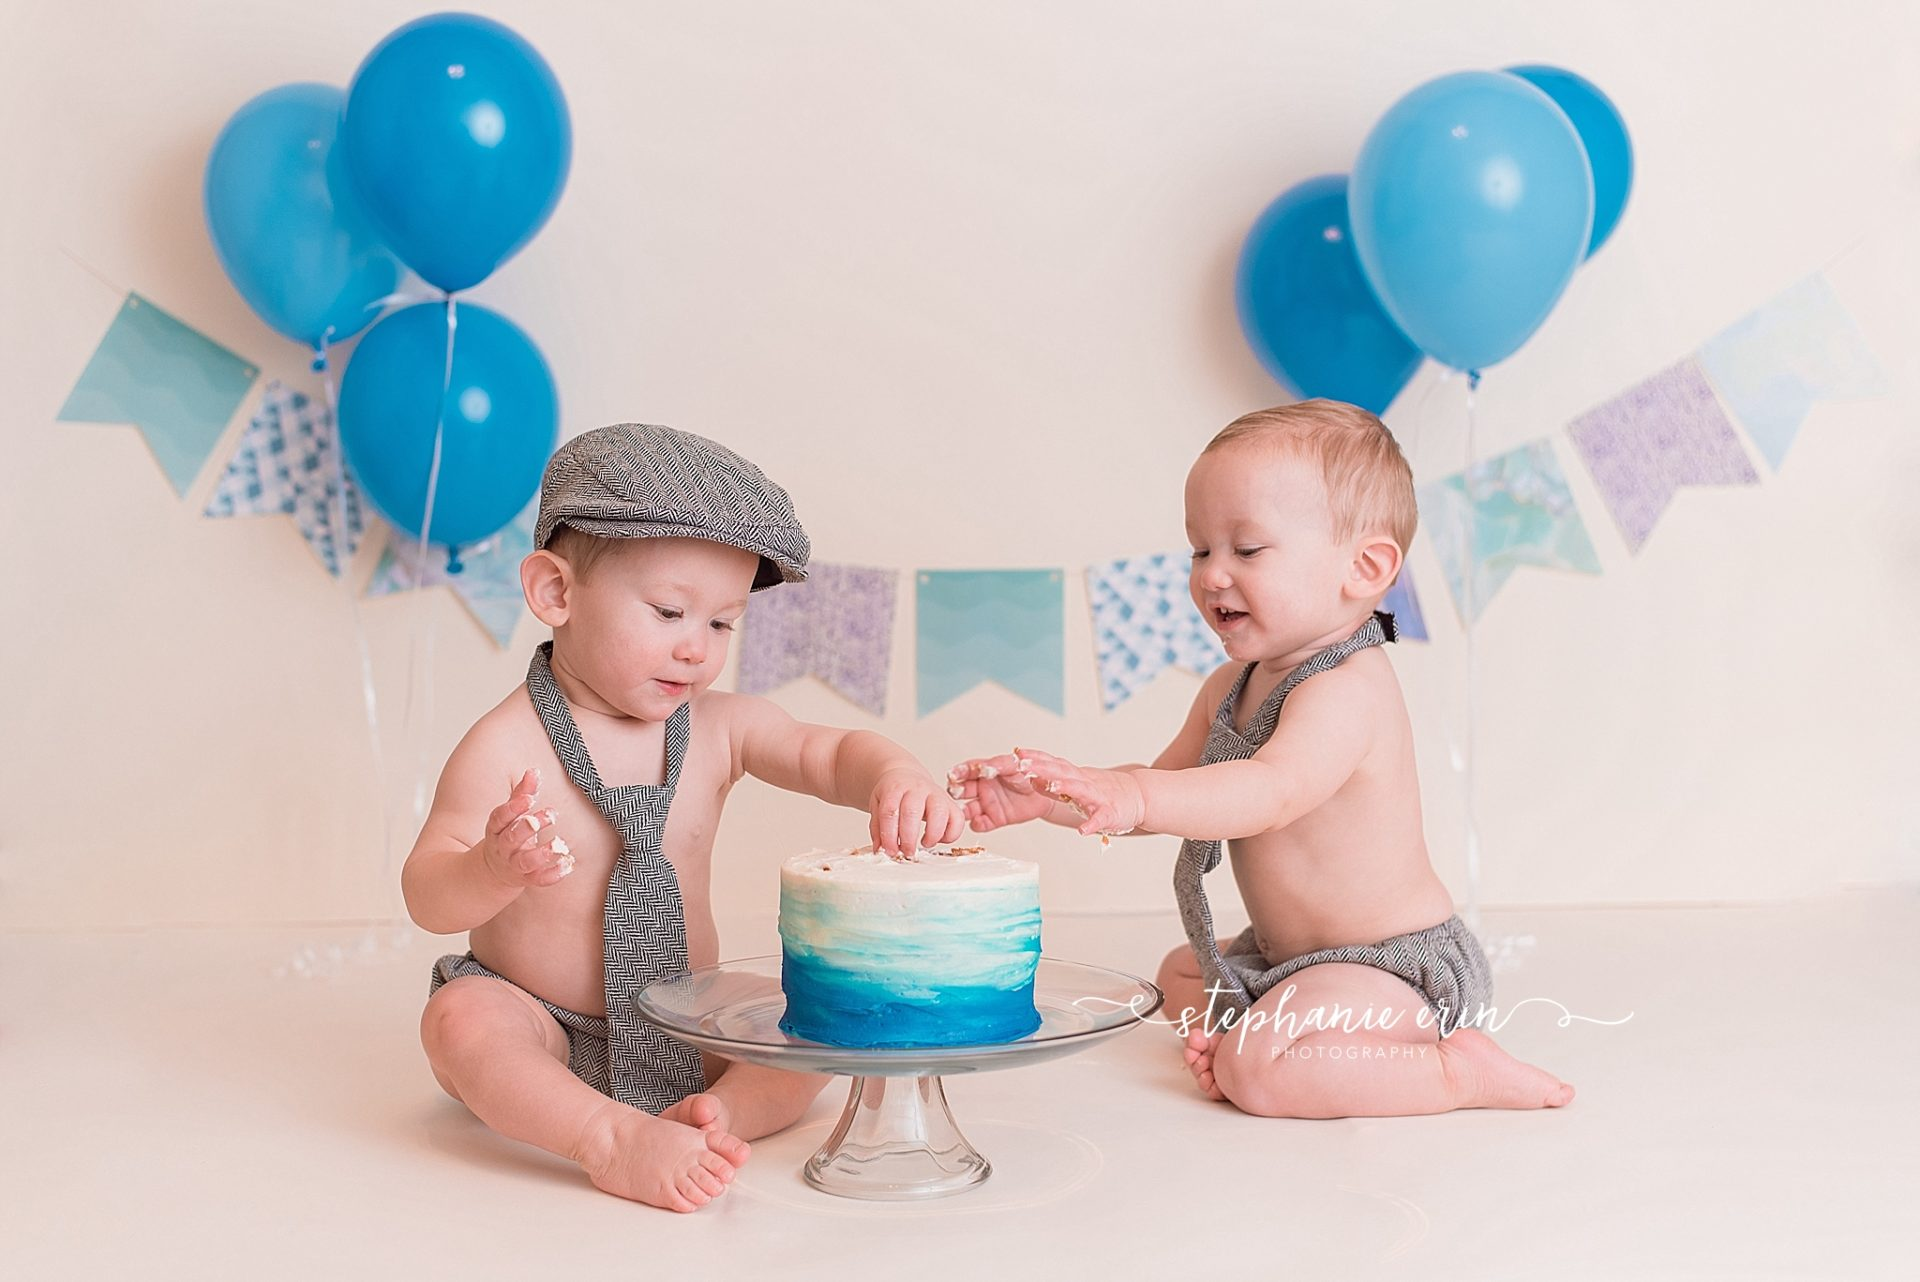 T + H Cake Smash Session | Stephanie Erin Photography | St George Utah Newborn Photographer